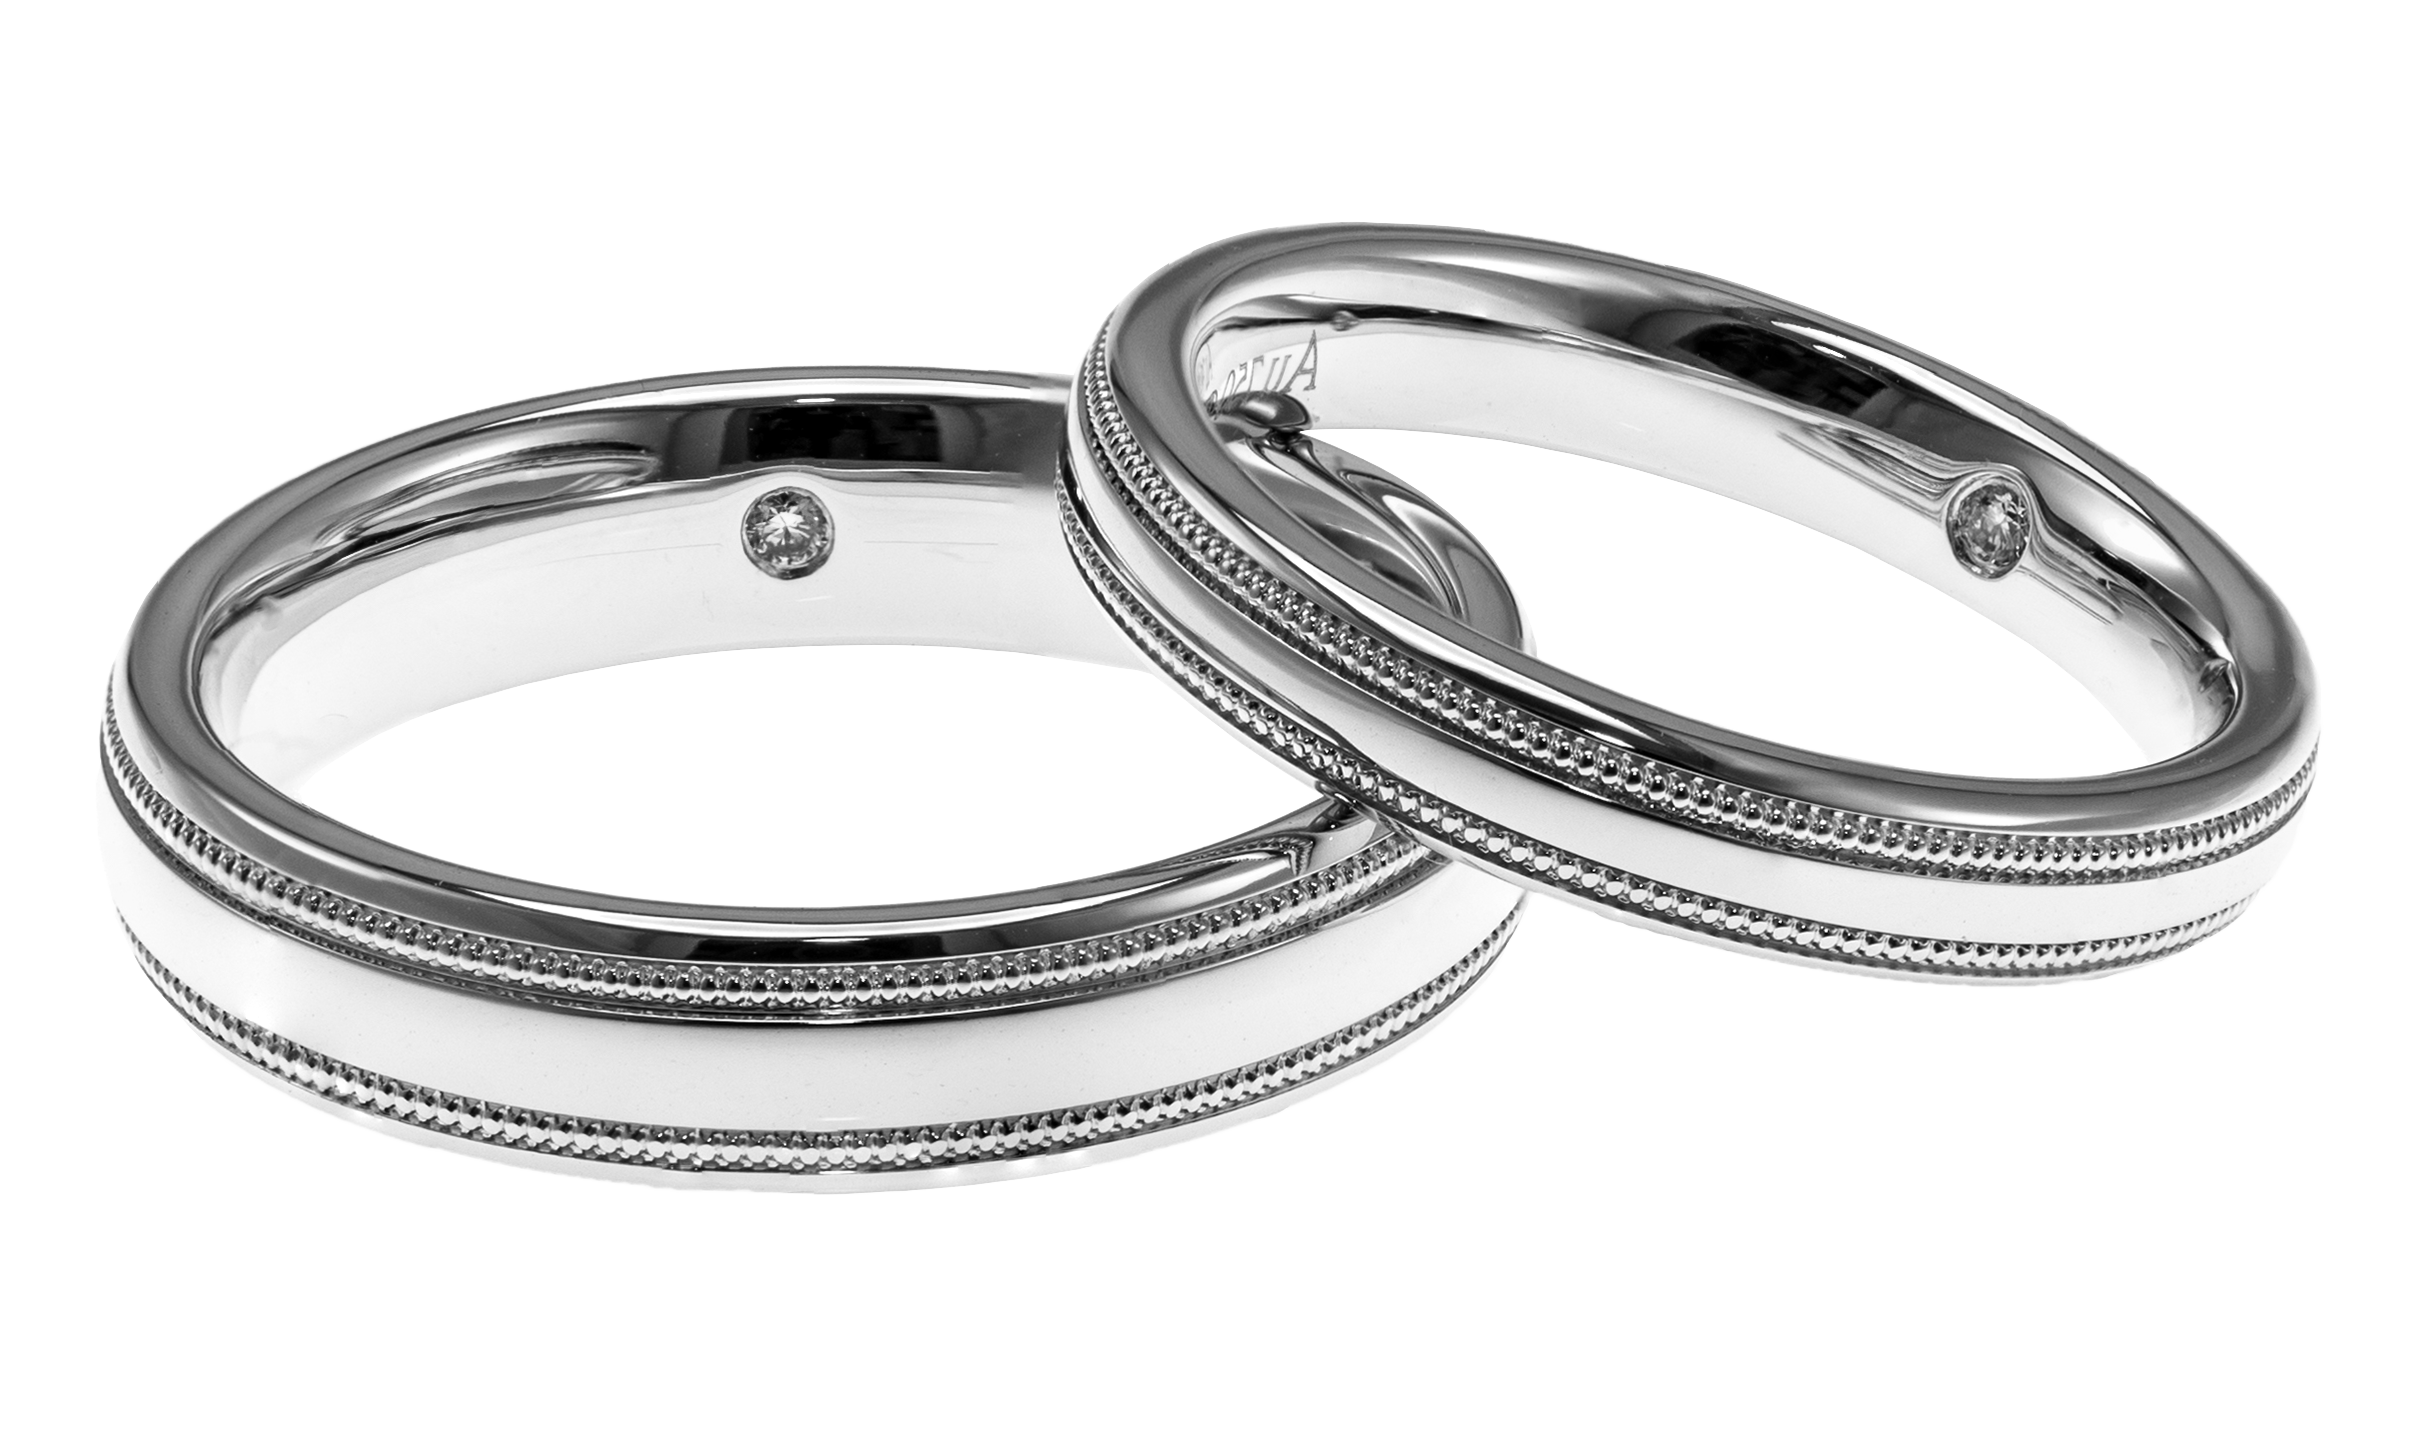 Silver Wedding Rings Png Pic 45270 Free Icons And Png Backgrounds